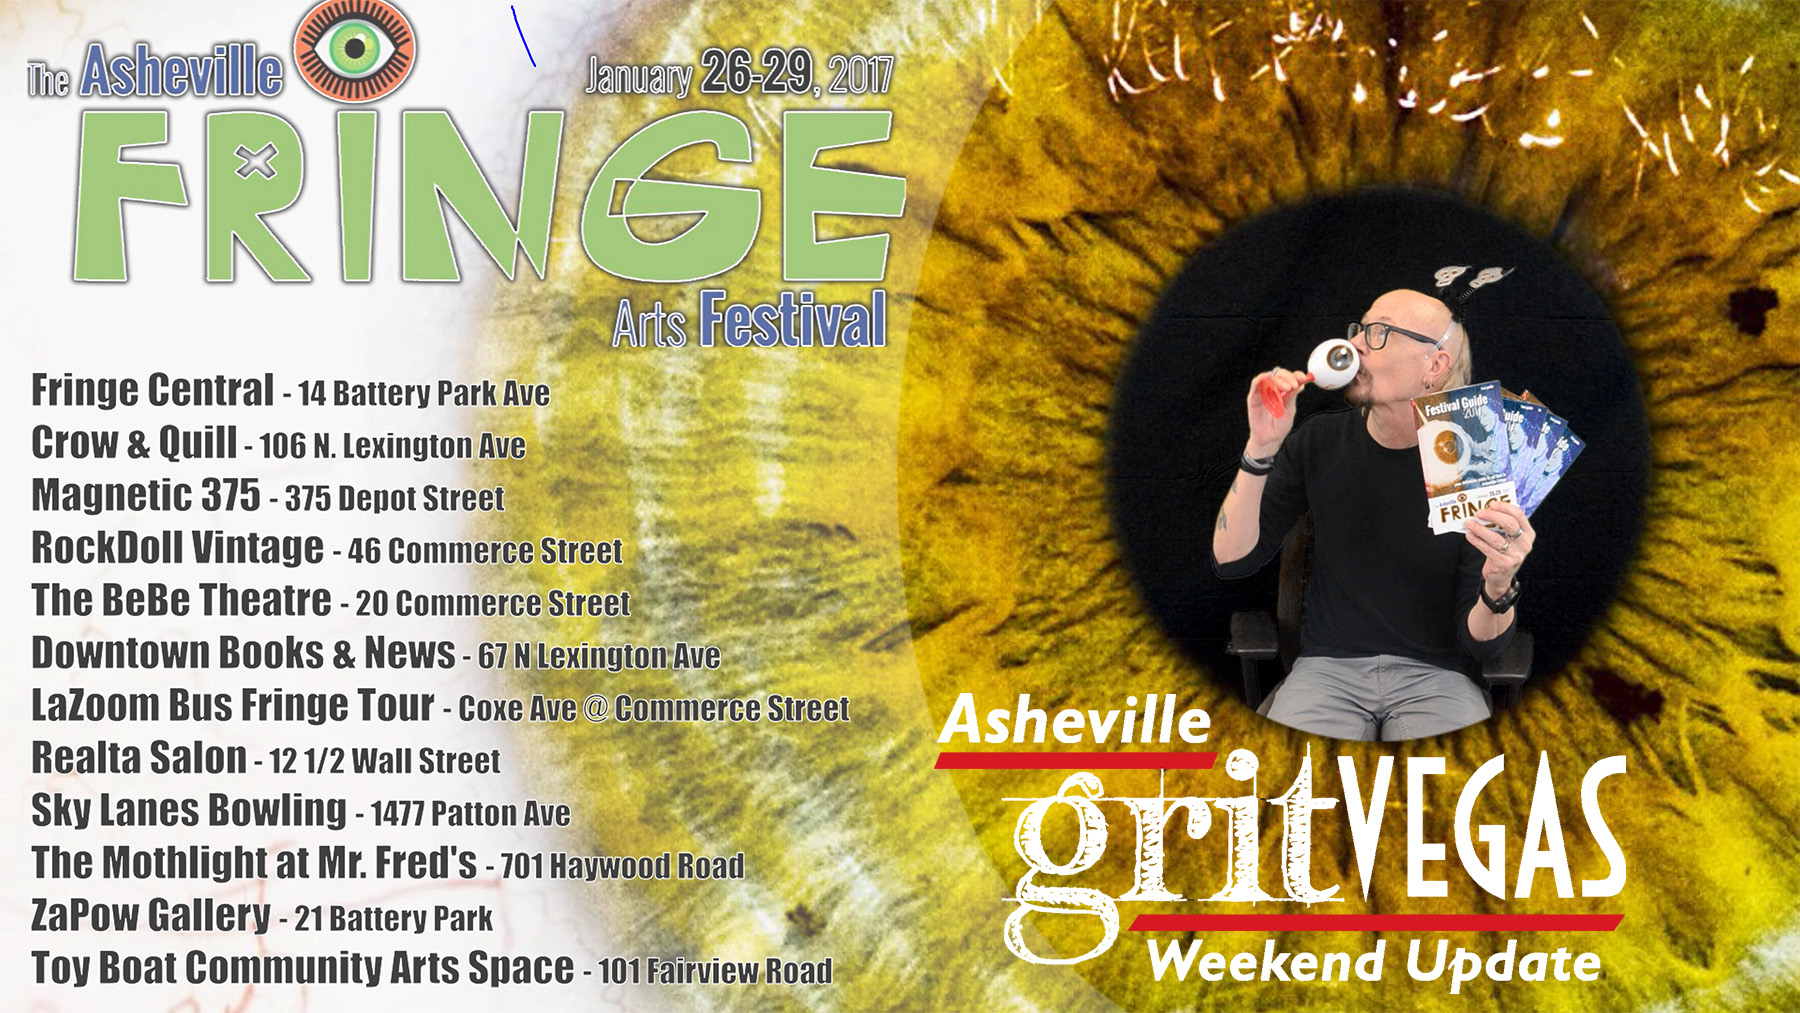 Fringe Fest Weekend Update